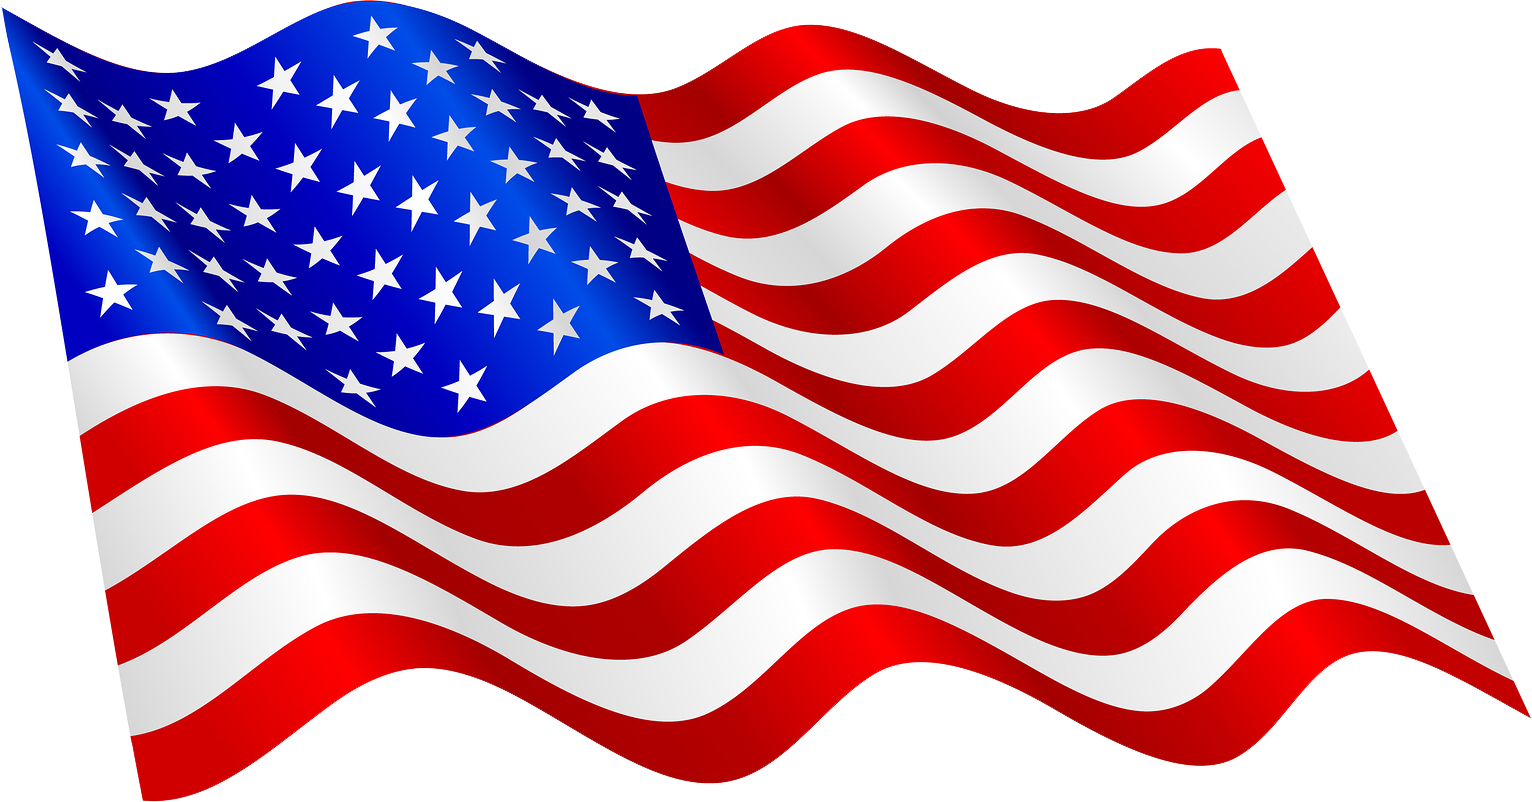 American flag vector png. Image purepng free transparent